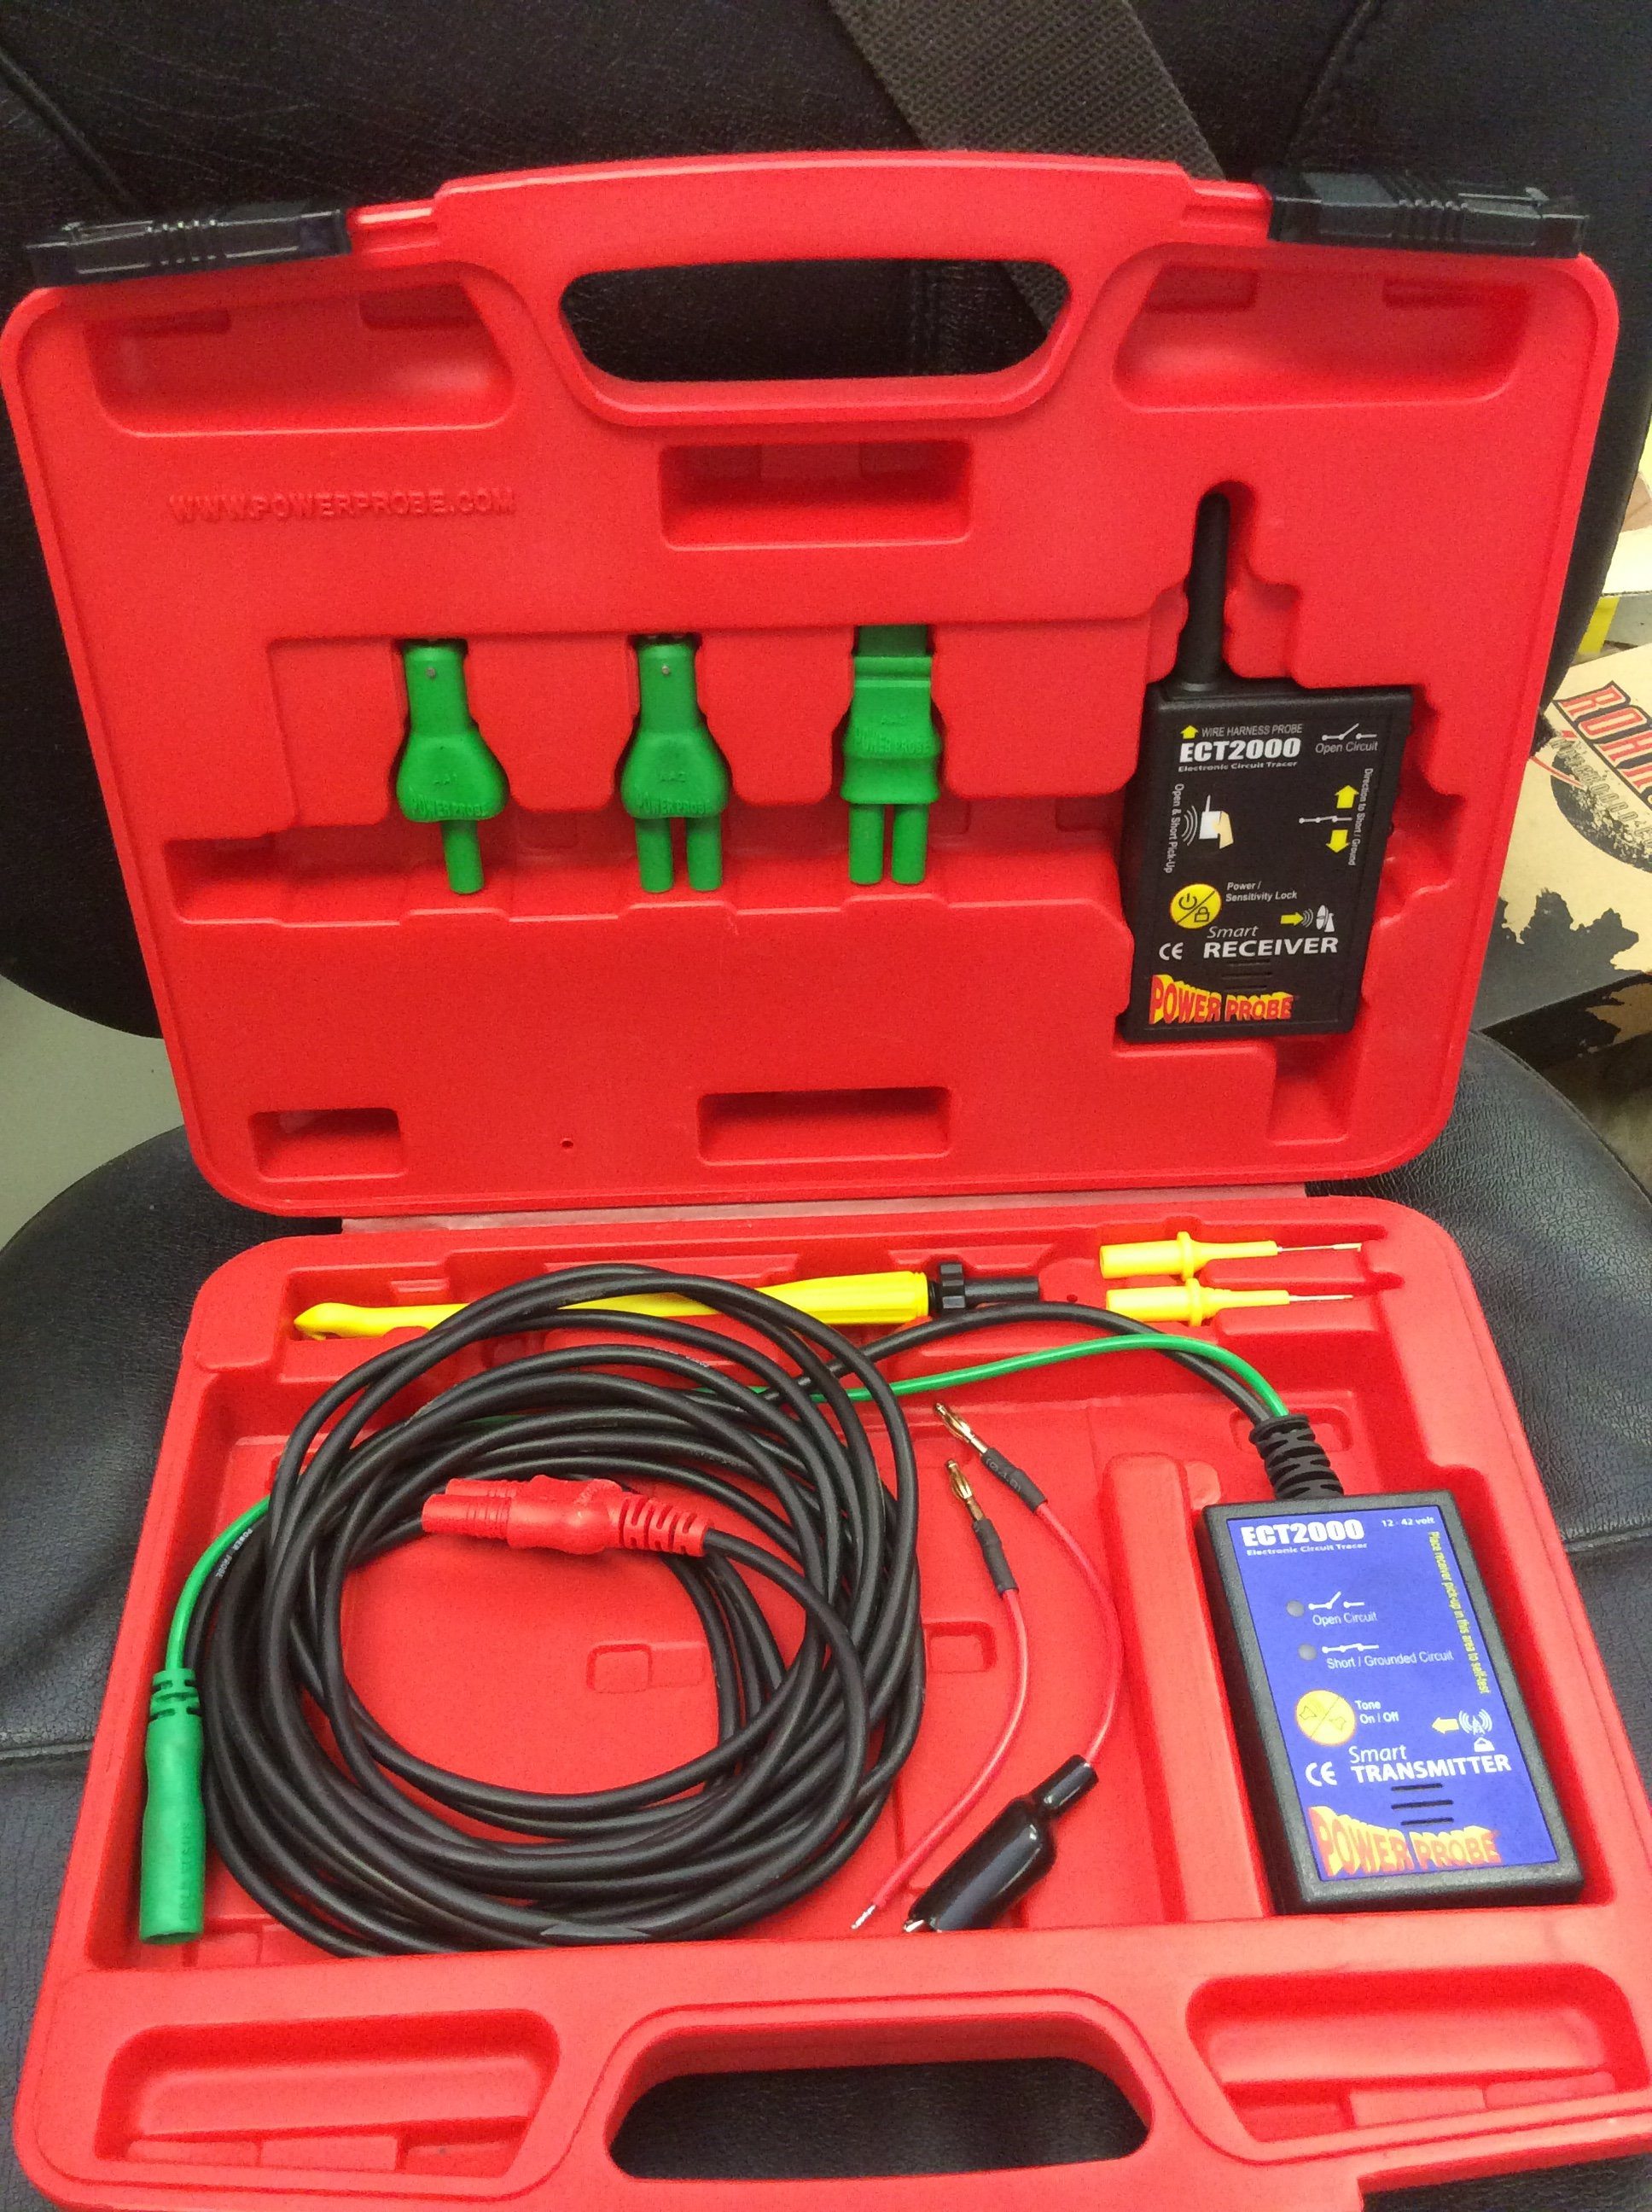 Short Open Circuit Tester The Tool Consignment Store Tracer Cornwell Tools Pwppect2000 Kit Excellent Condition